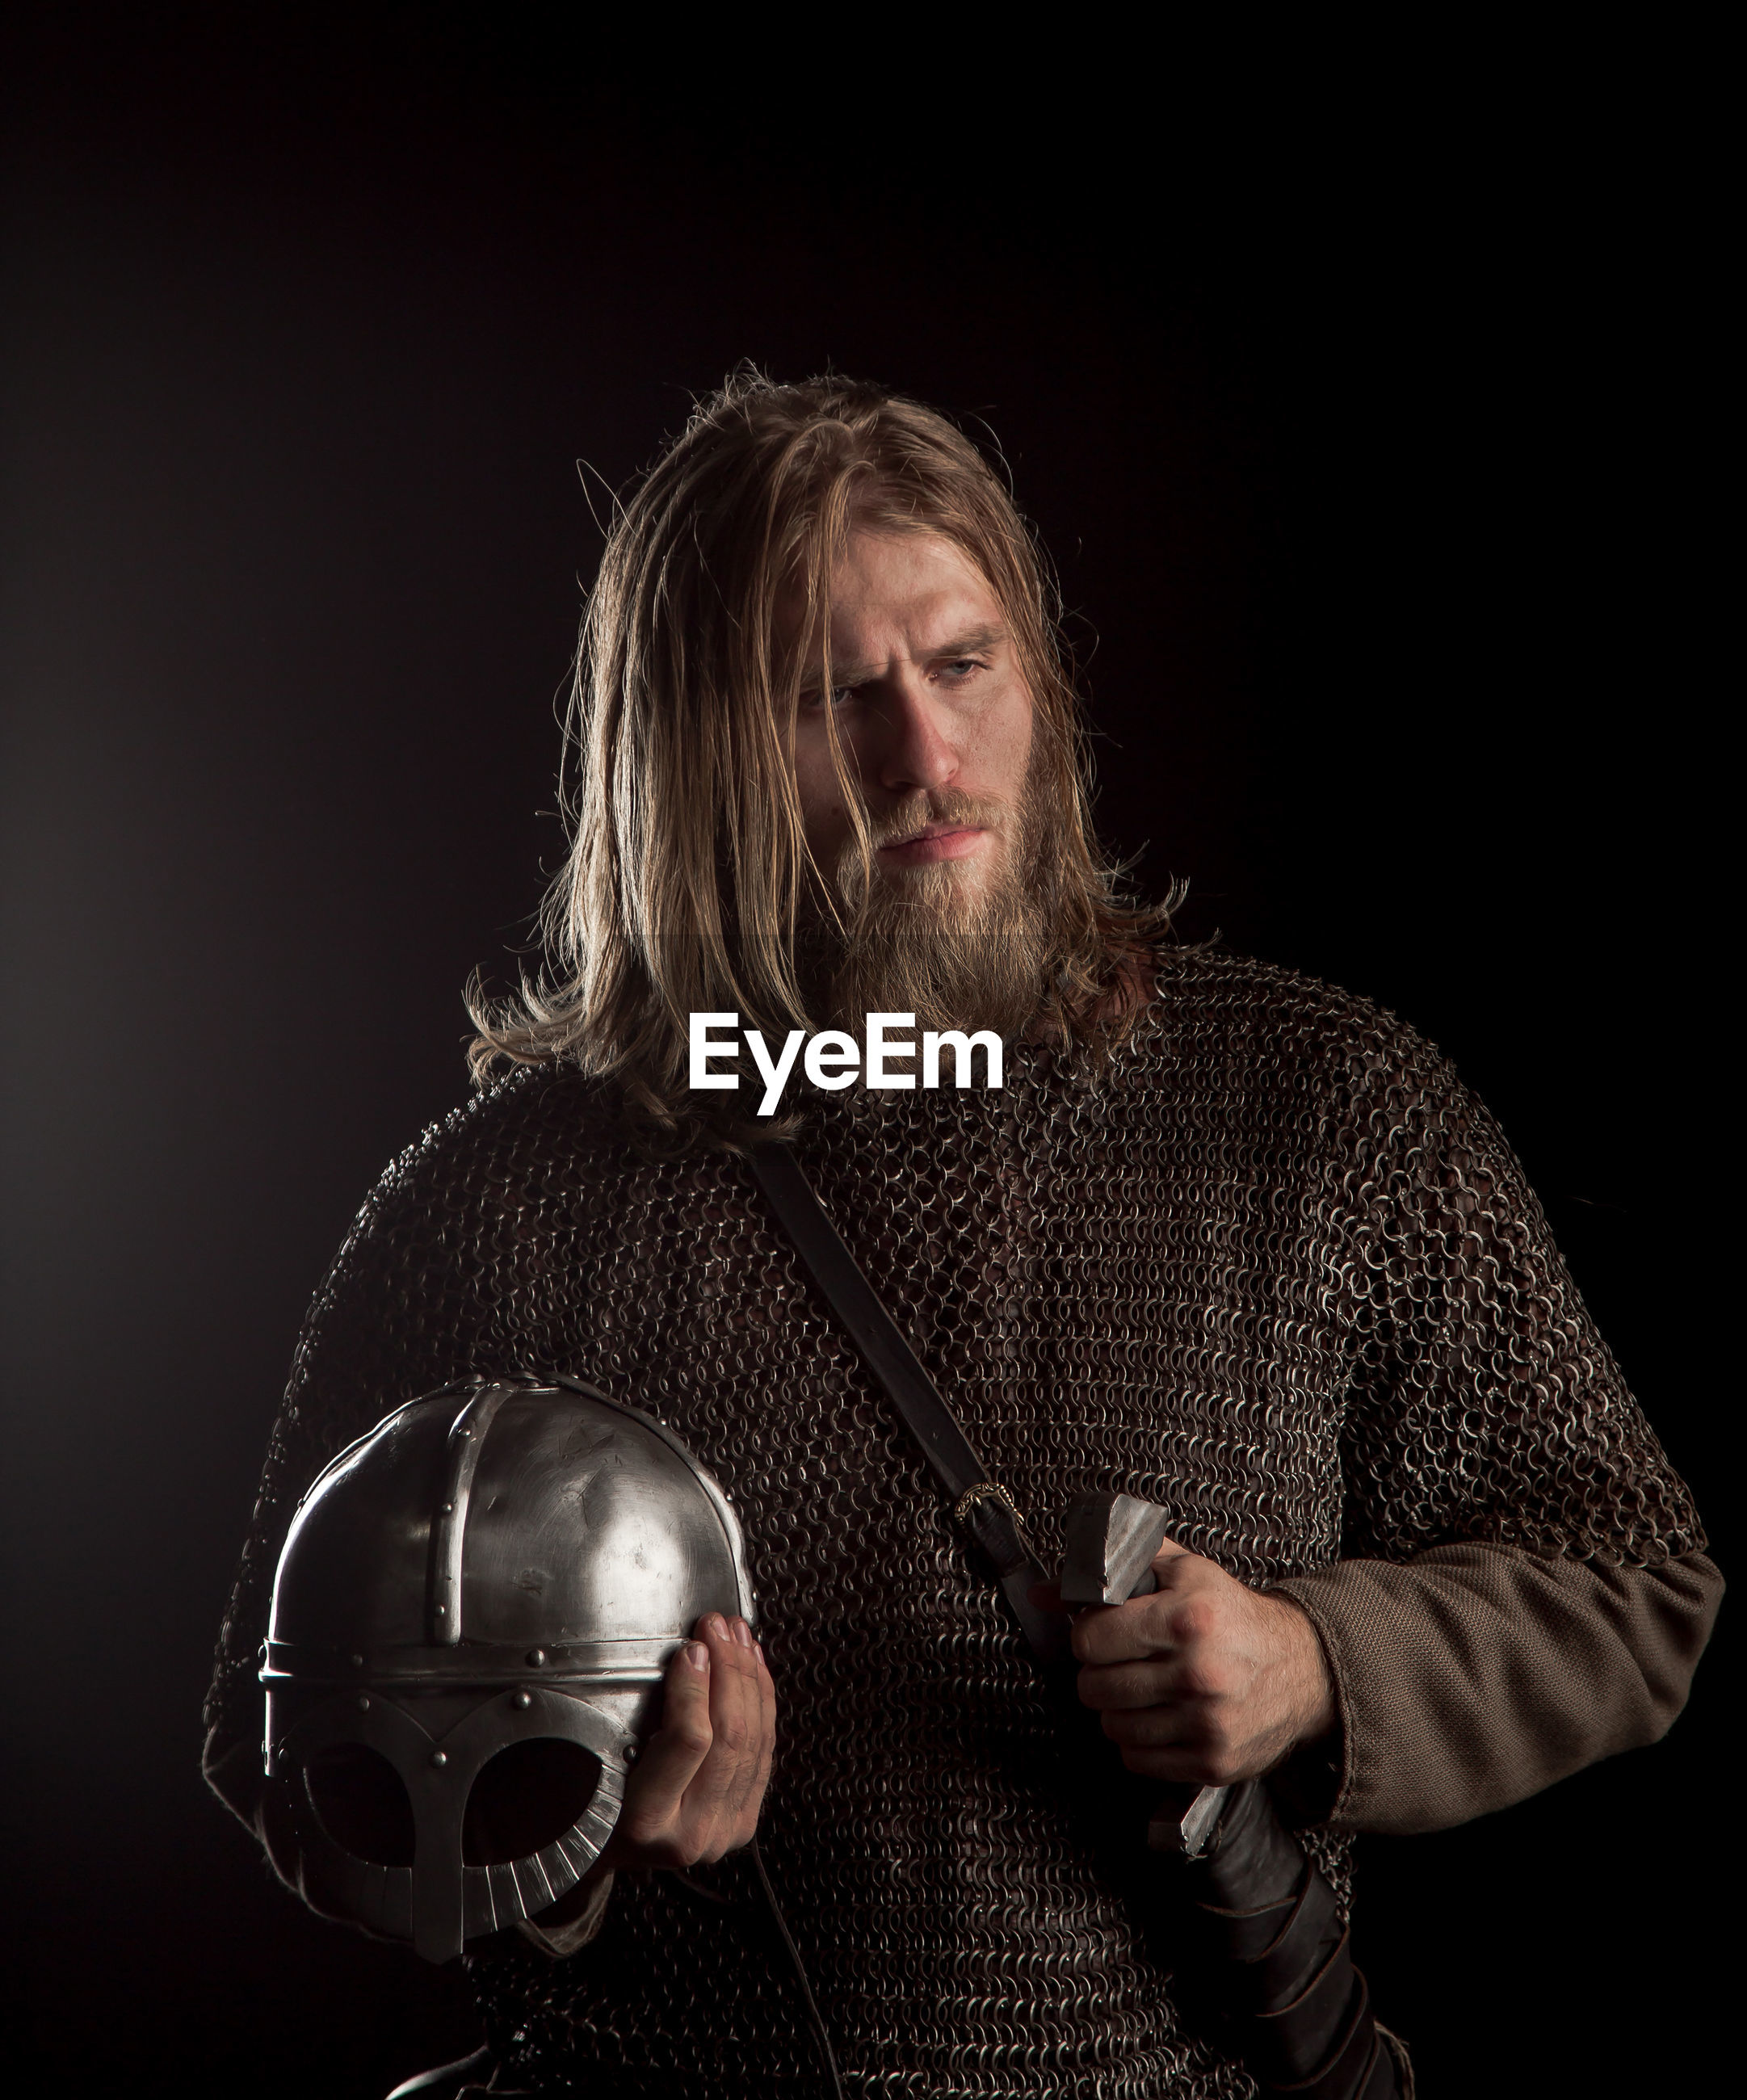 Viking with helmet and sword against black background